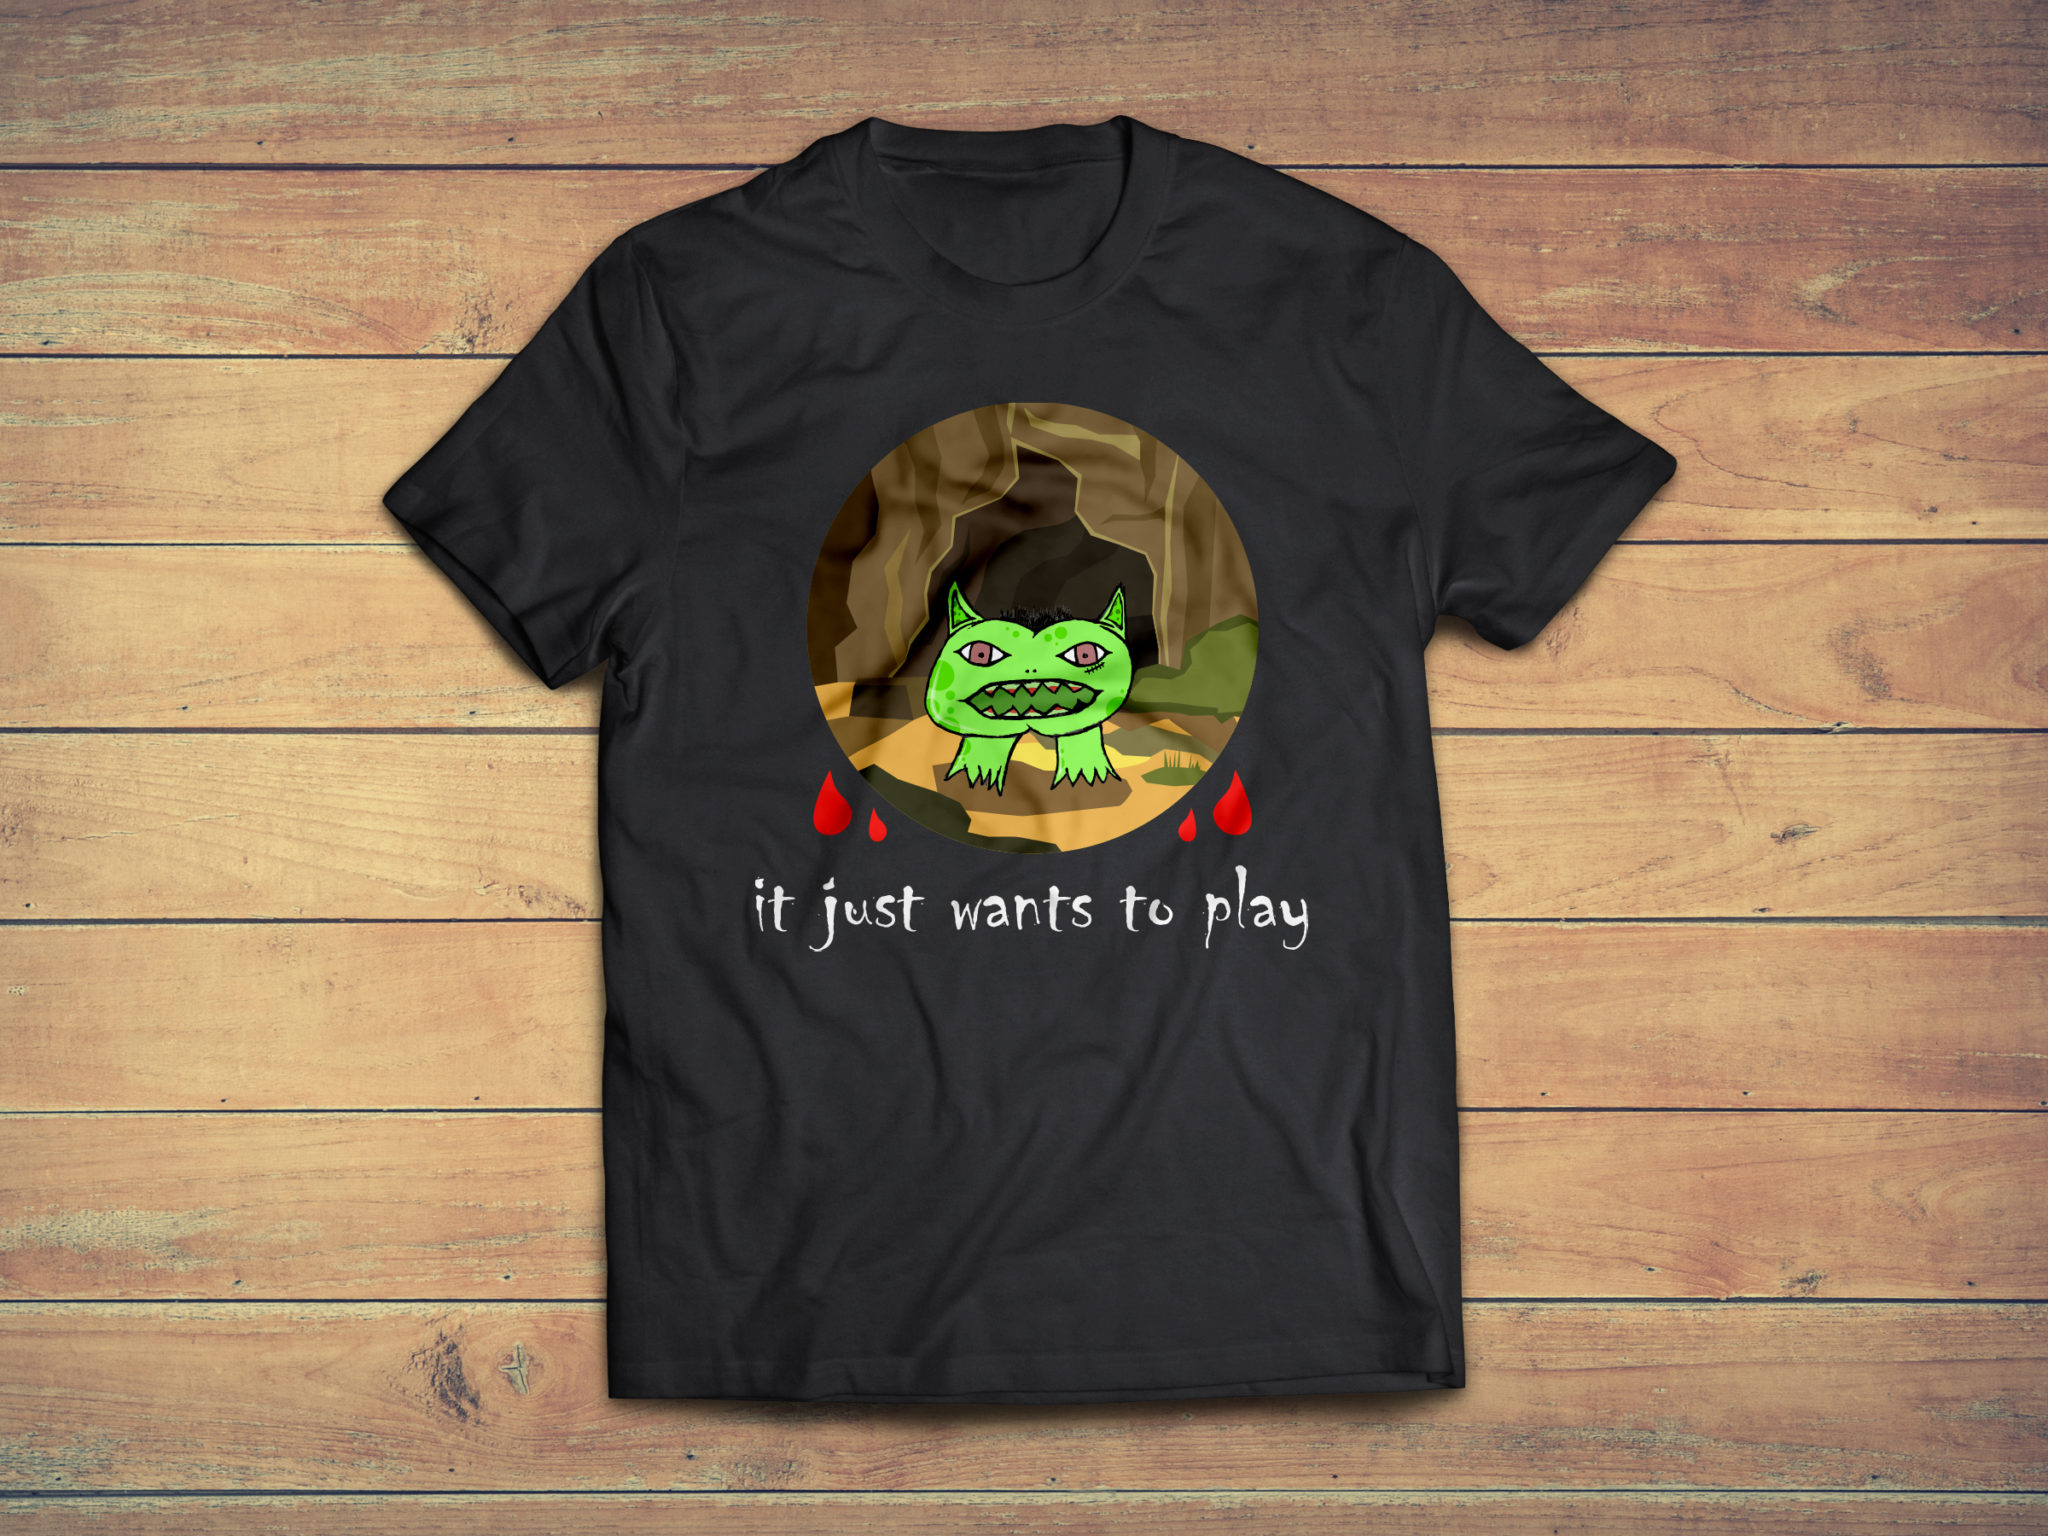 Shirt T-Shirt Motiv: It just wants to play